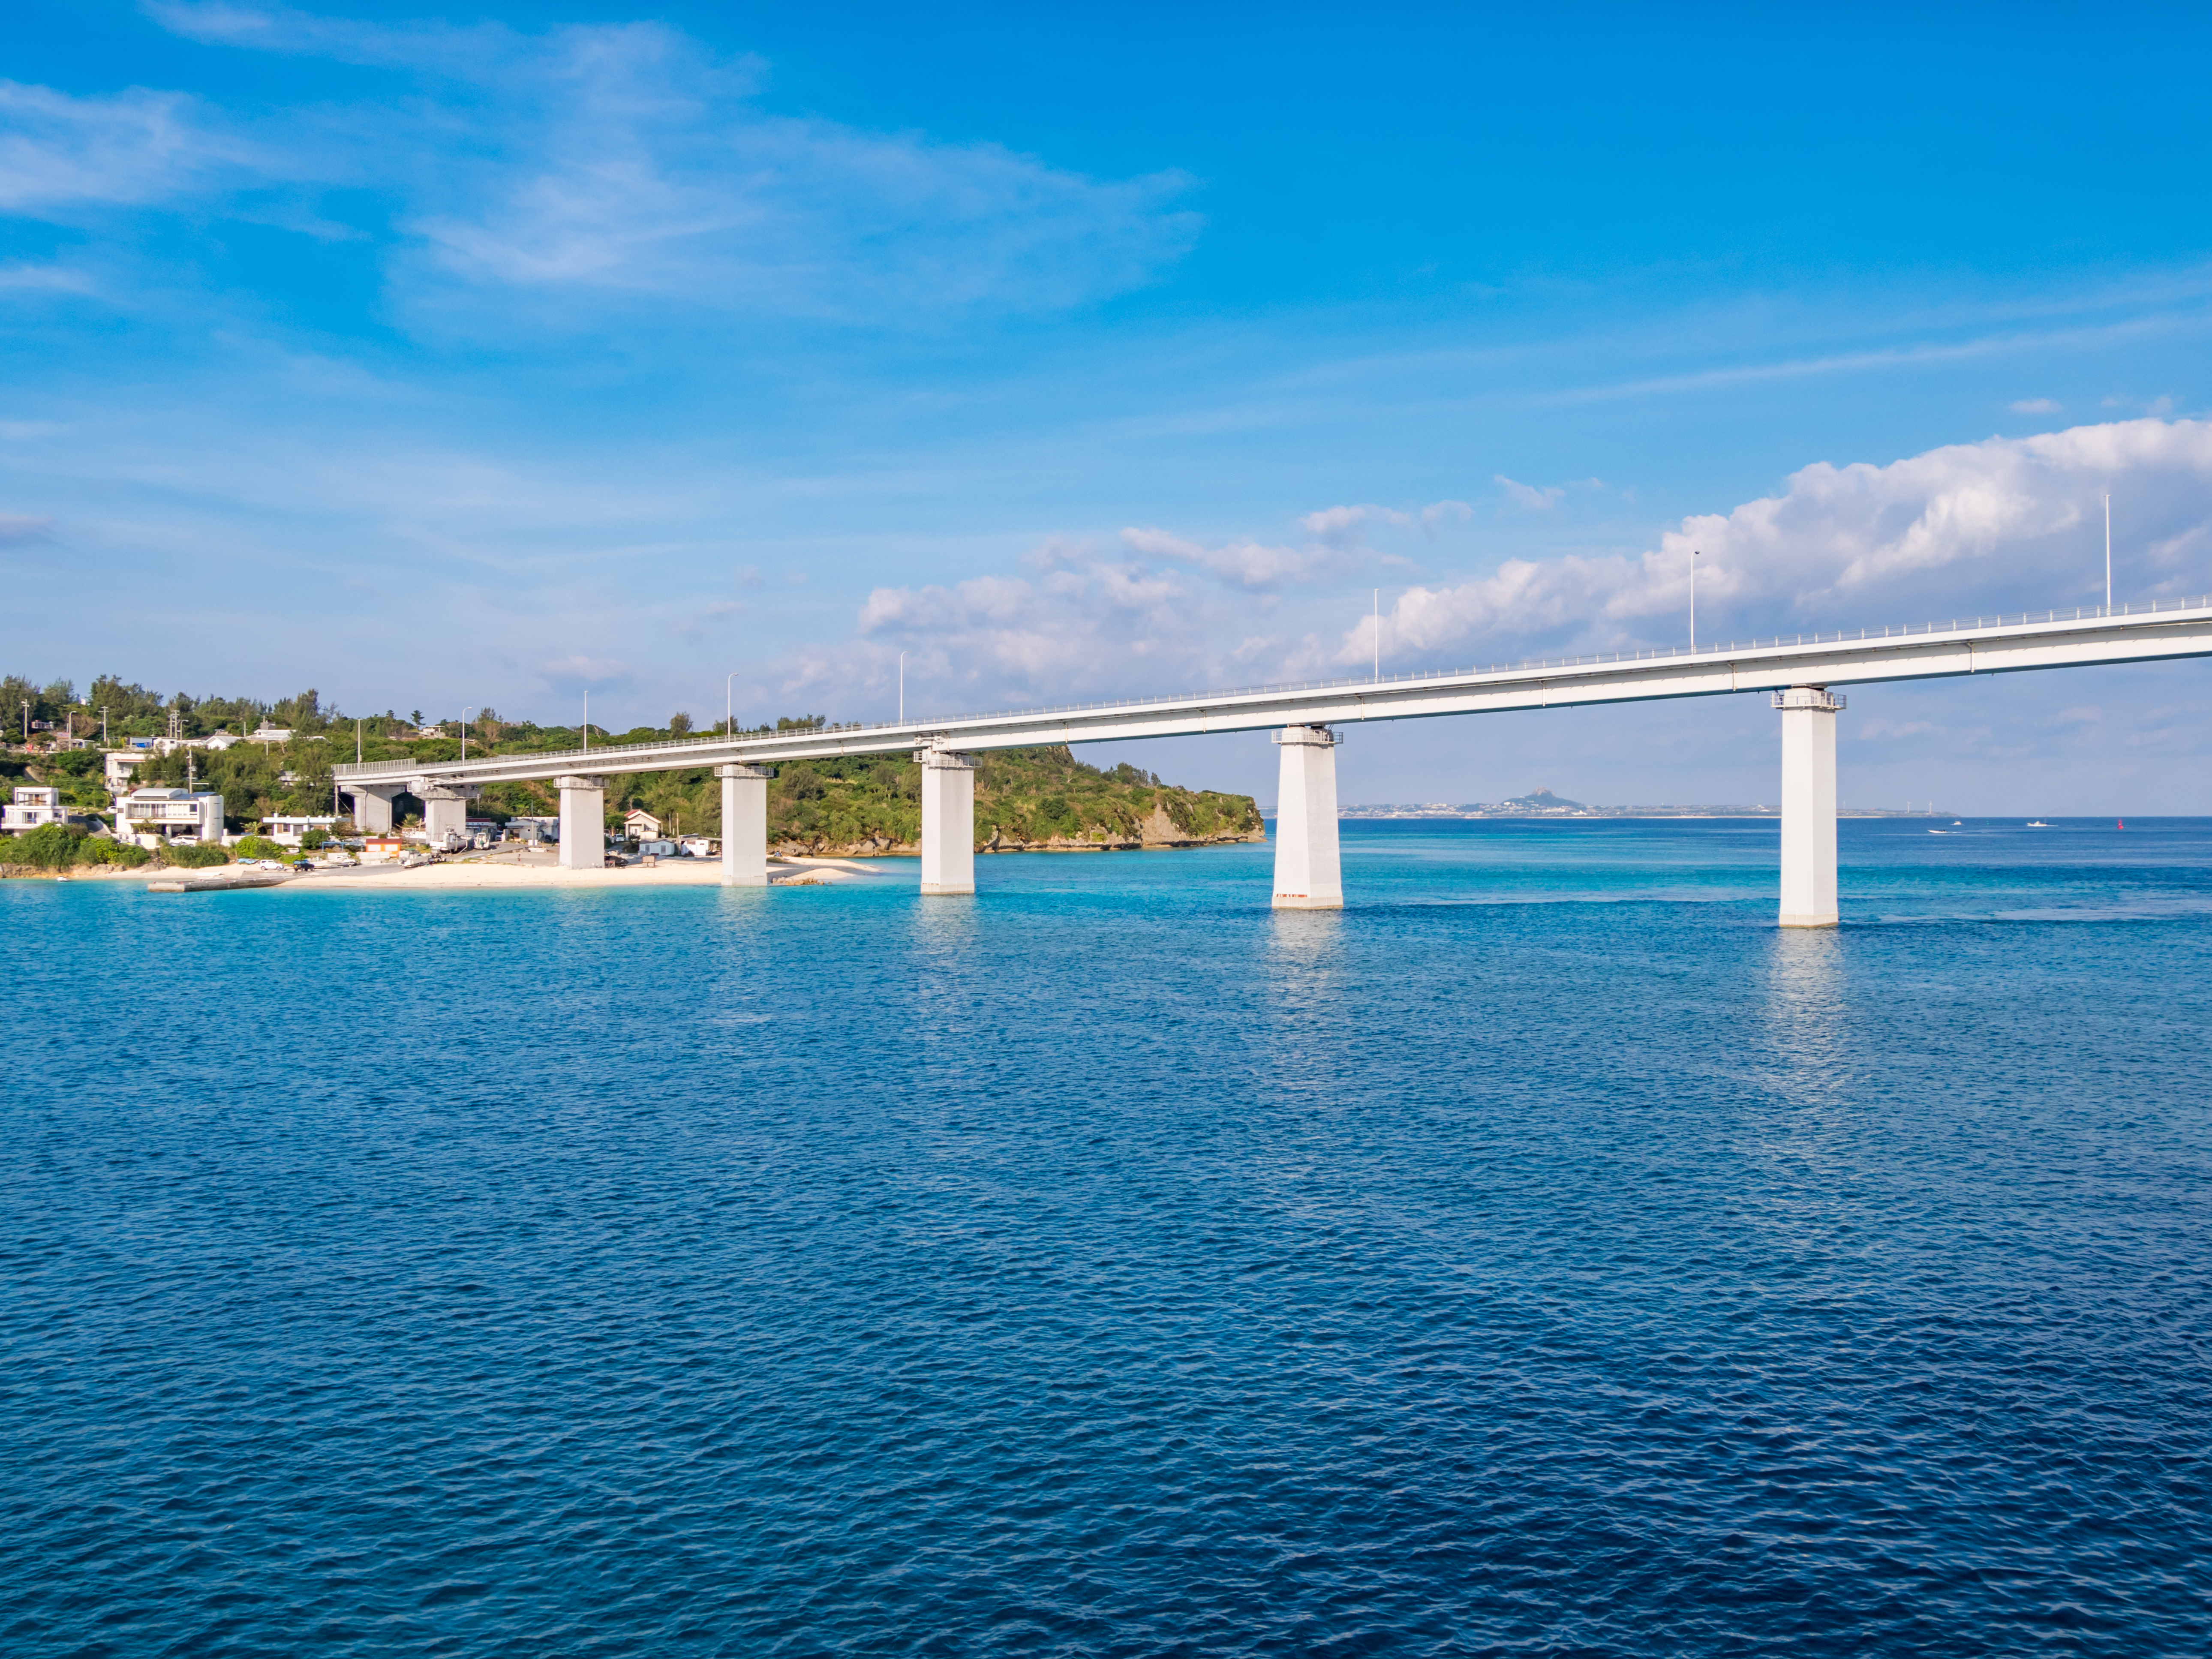 The 700 meter-long bridge from Naha Airport on the way to The Beach Resort Sesoko by Hilton Club